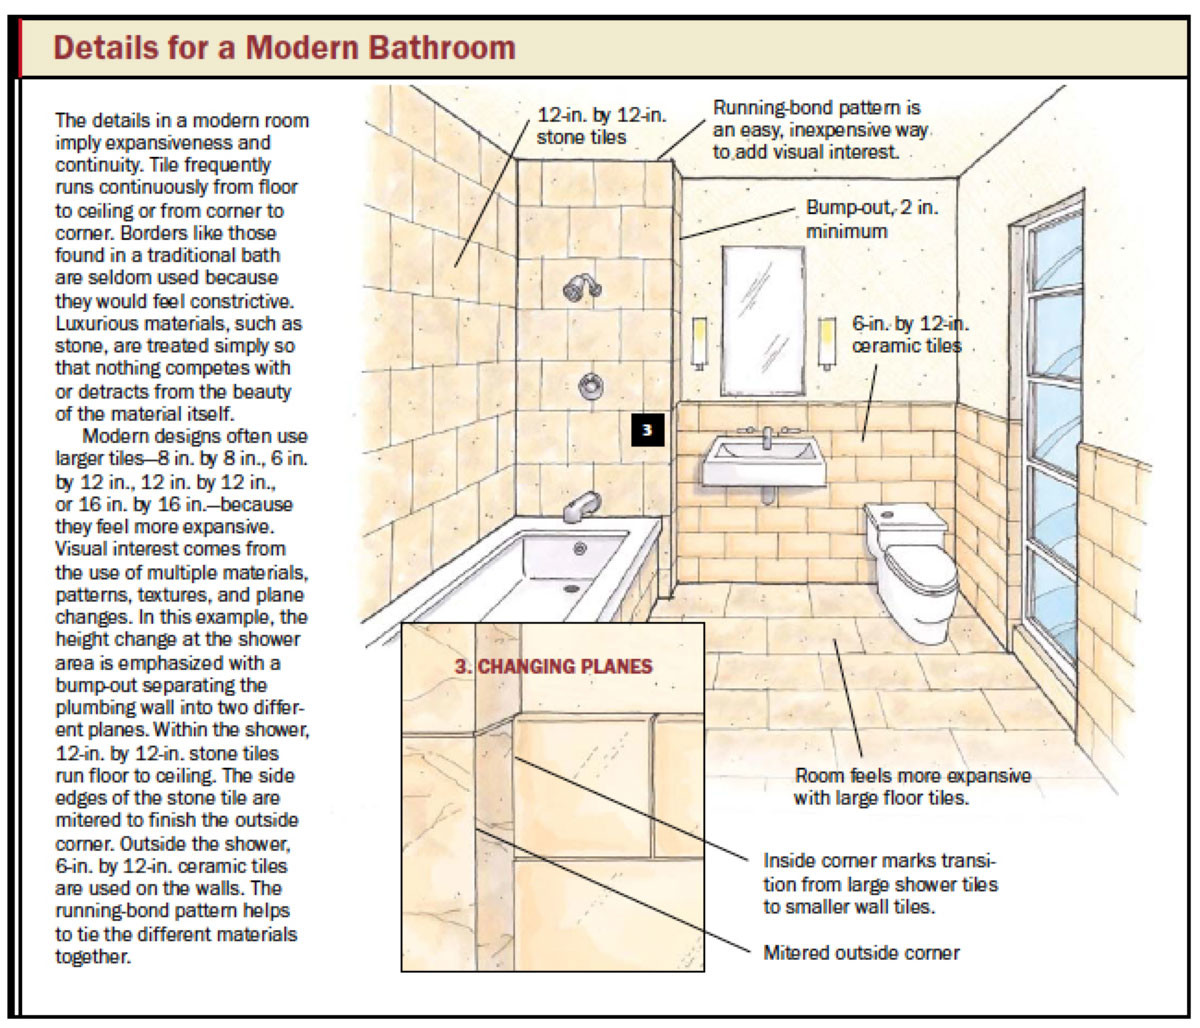 Bathroom And Kitchen Design: How To Choose Tile And Plan